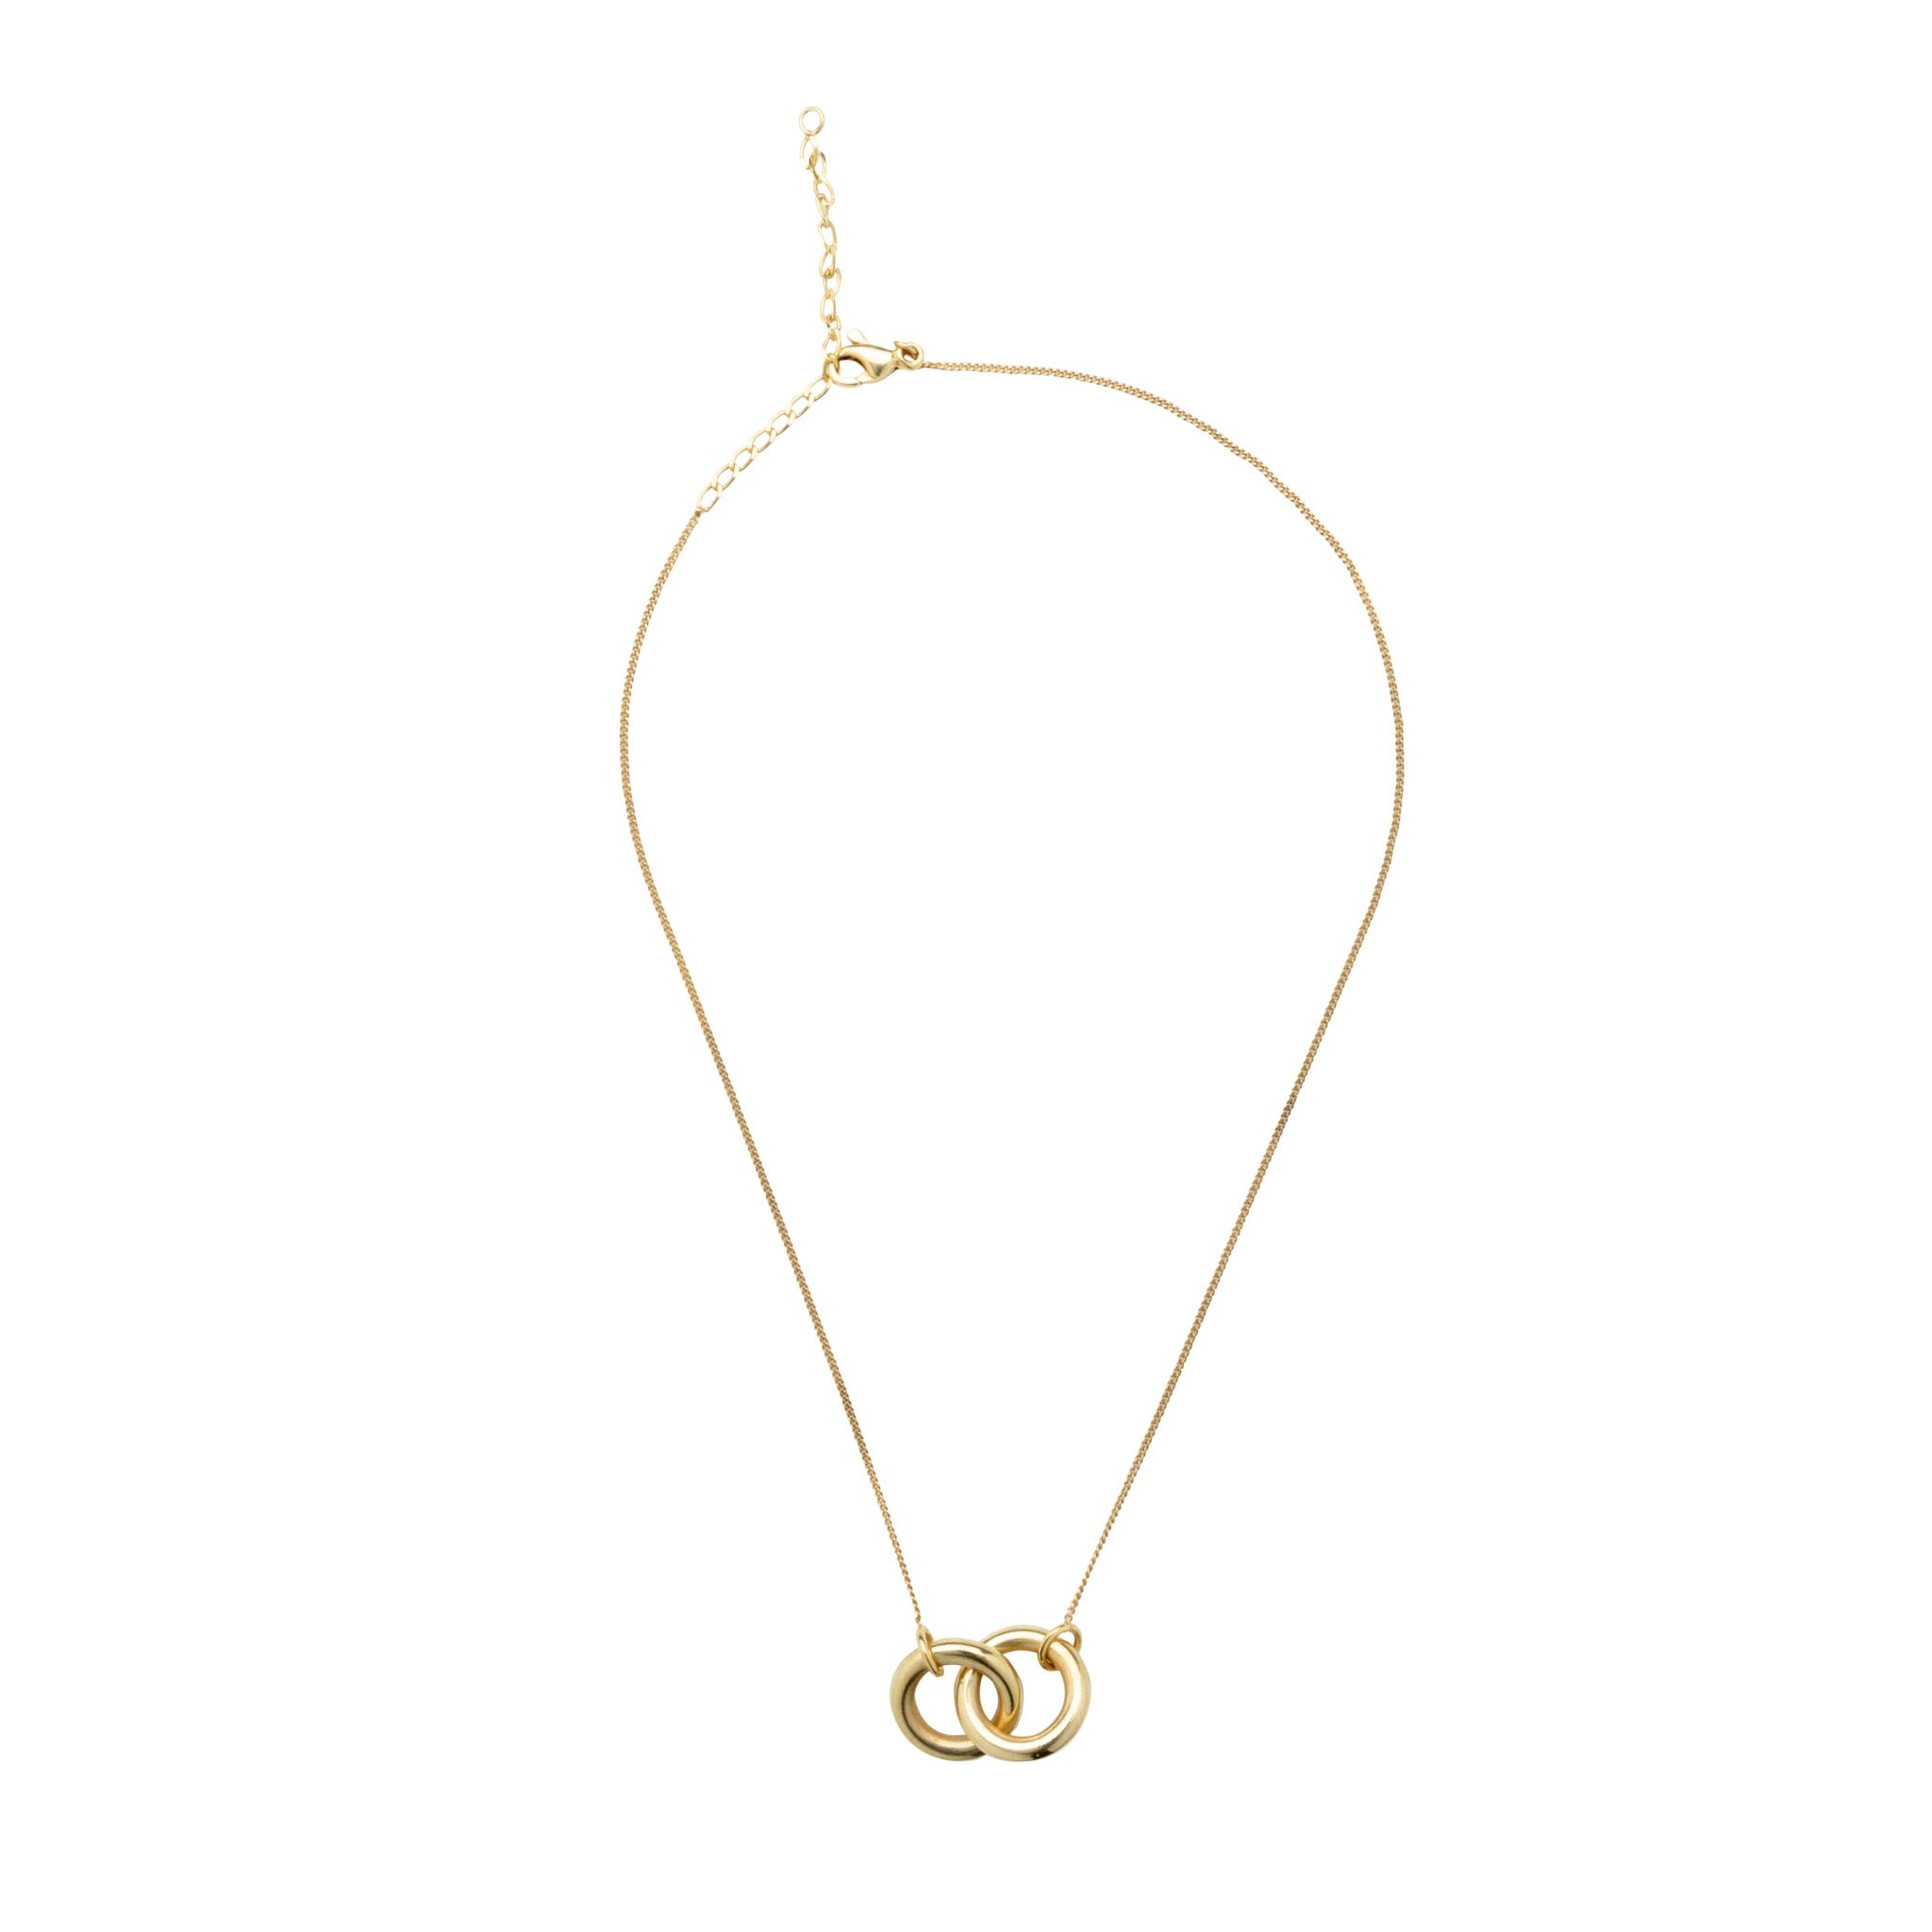 Eternal Connection 14KT Solid Gold Necklace (Large)